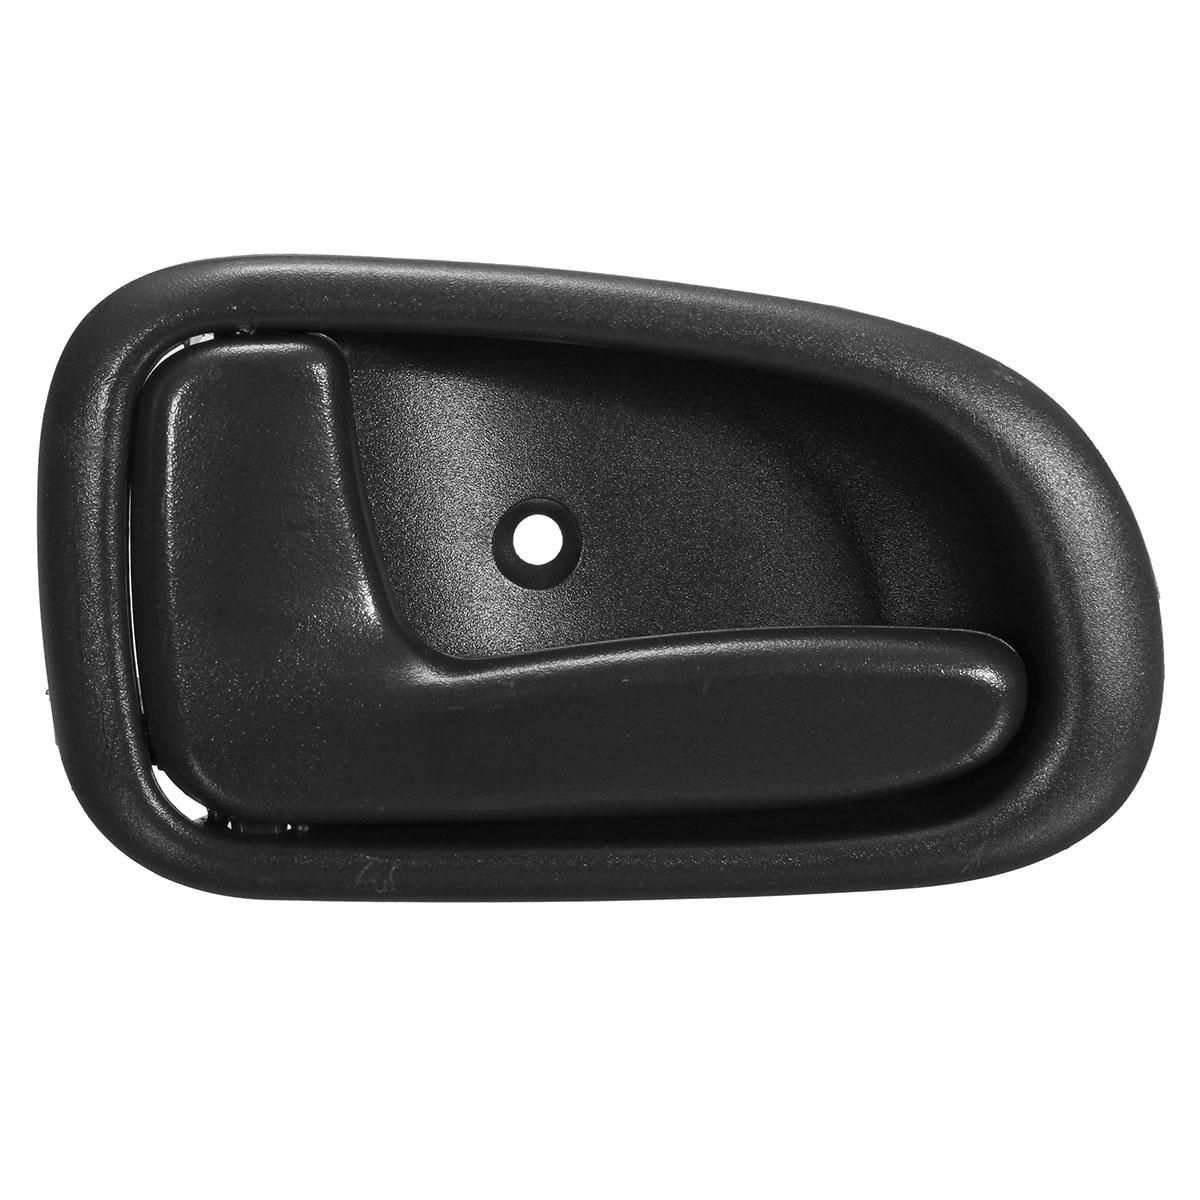 Front Rear Left Right Inside Car Door Handle Fit For Toyota Corolla 93 97 Auto Parts From Automobiles Motorcycles On Banggood Com Toyota Corolla Inside Car Door Handles